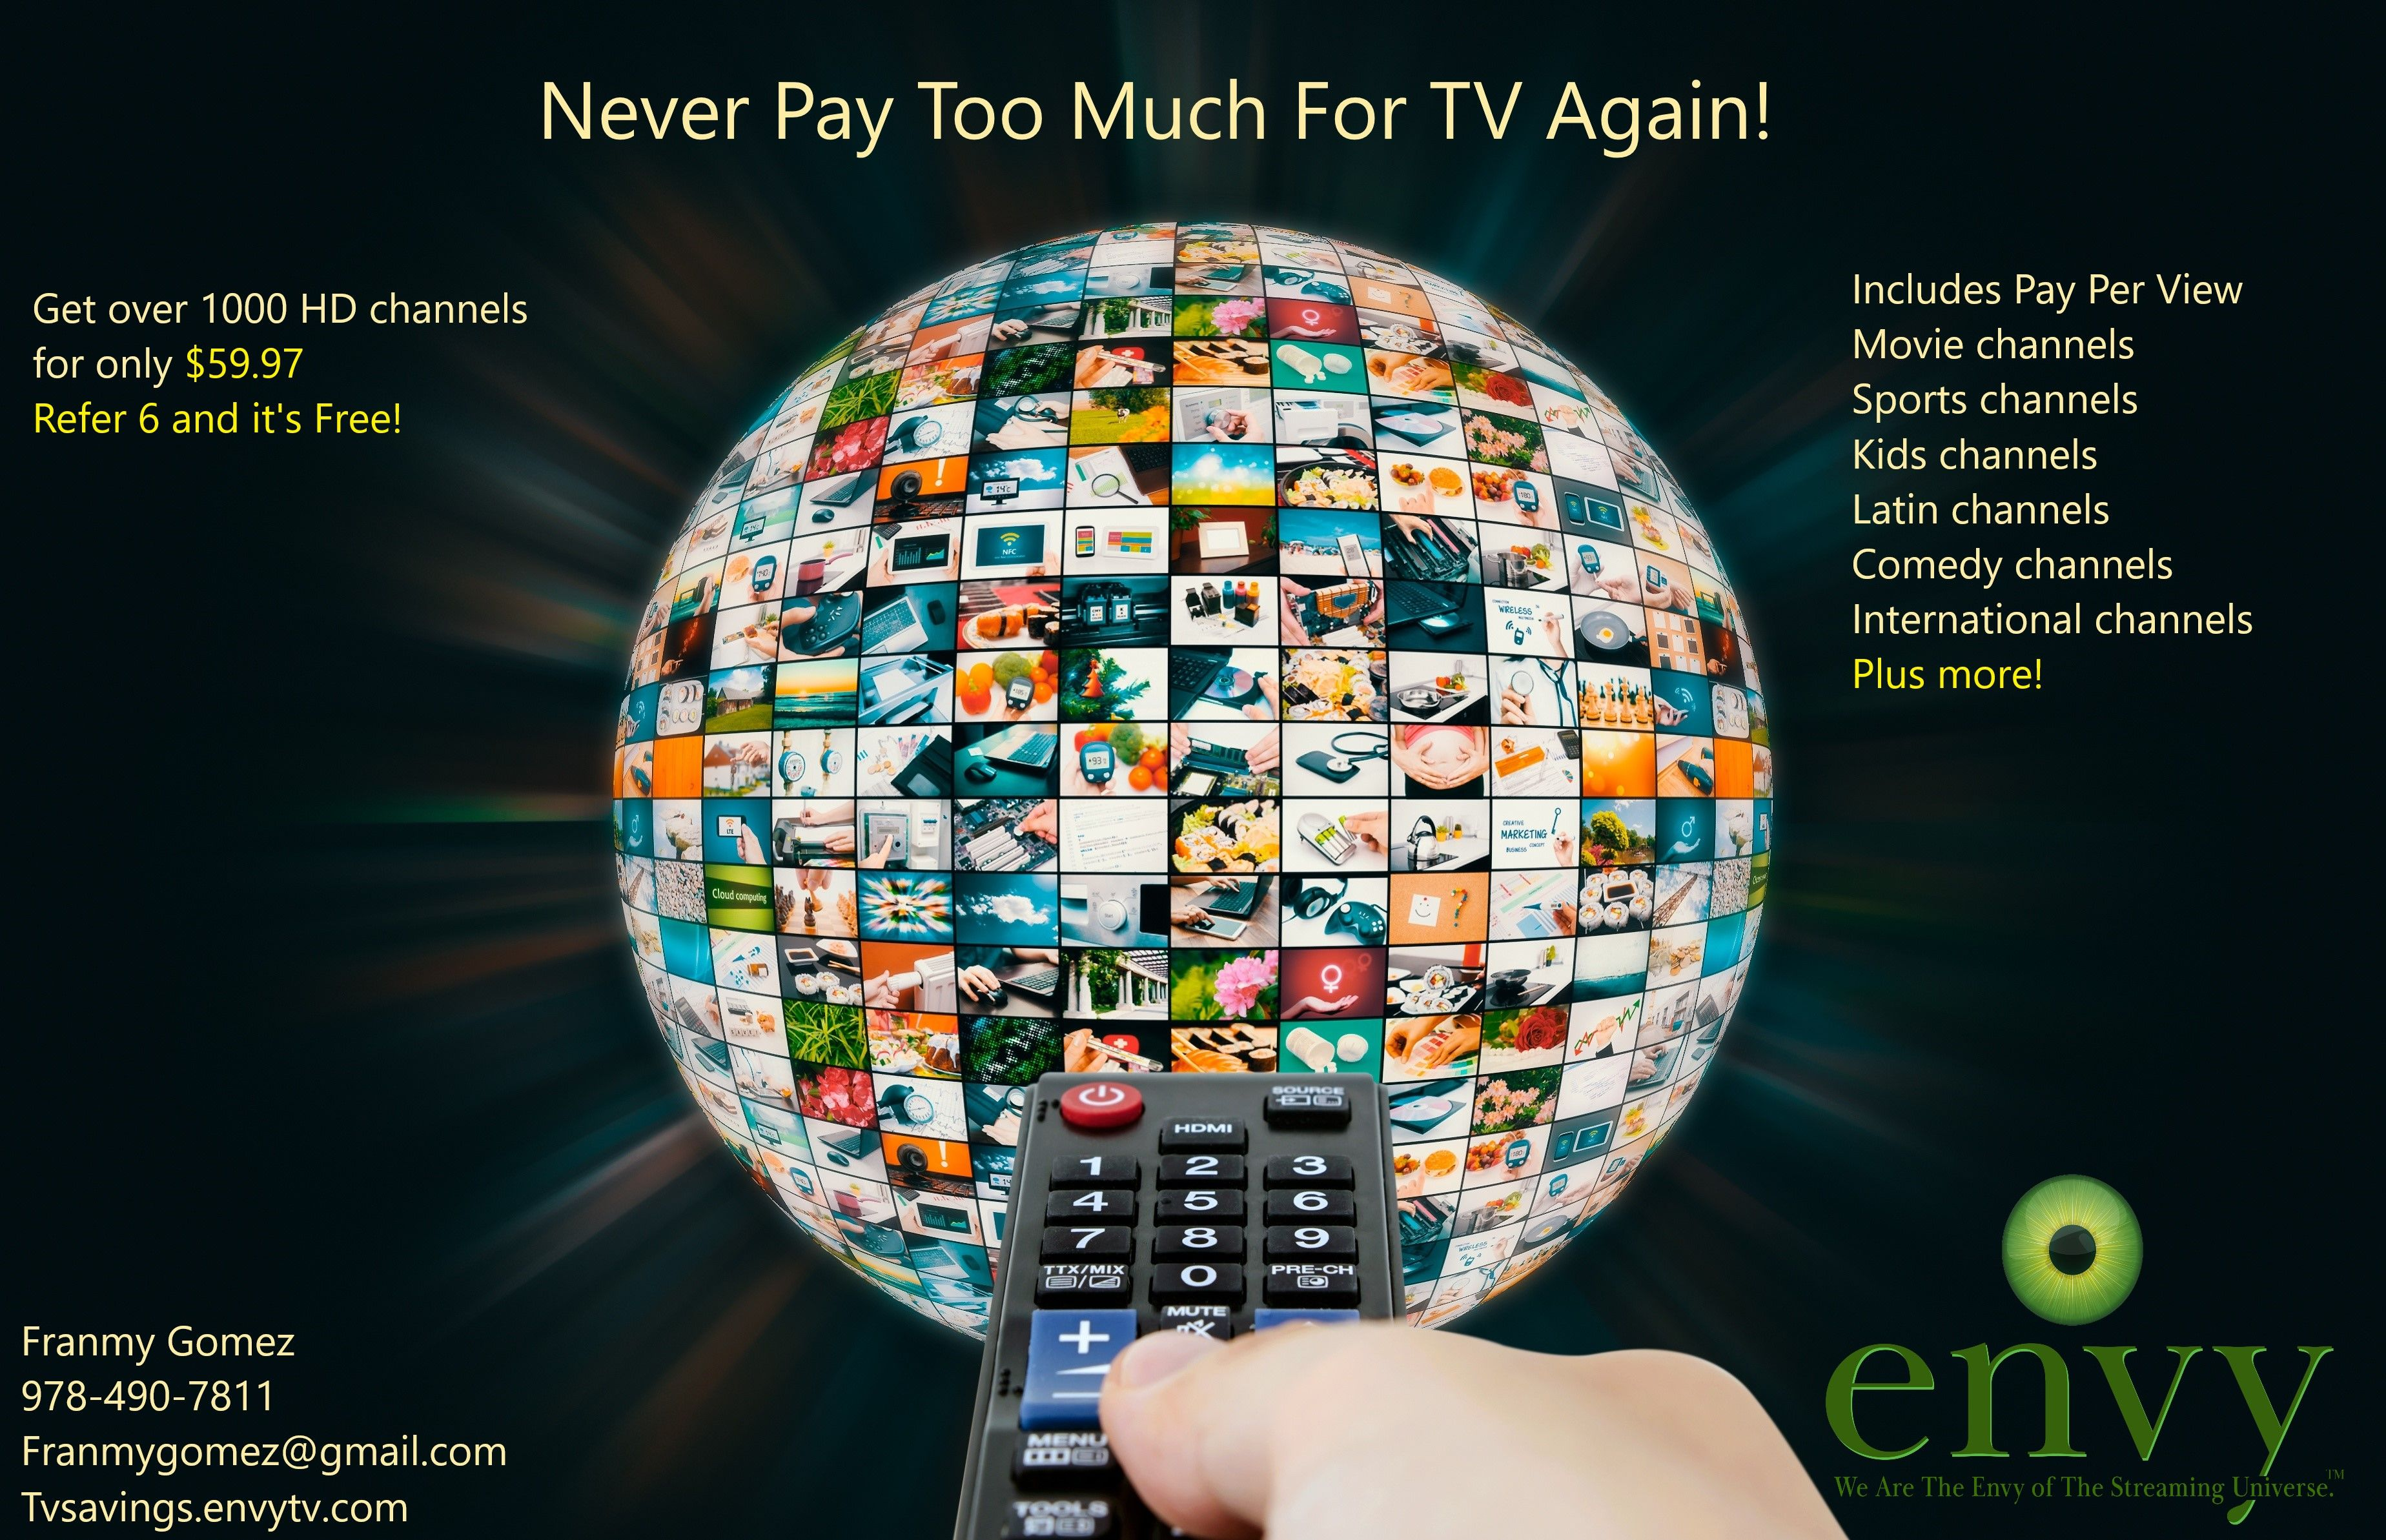 Get our new improved live TV app envyTV with over 1000